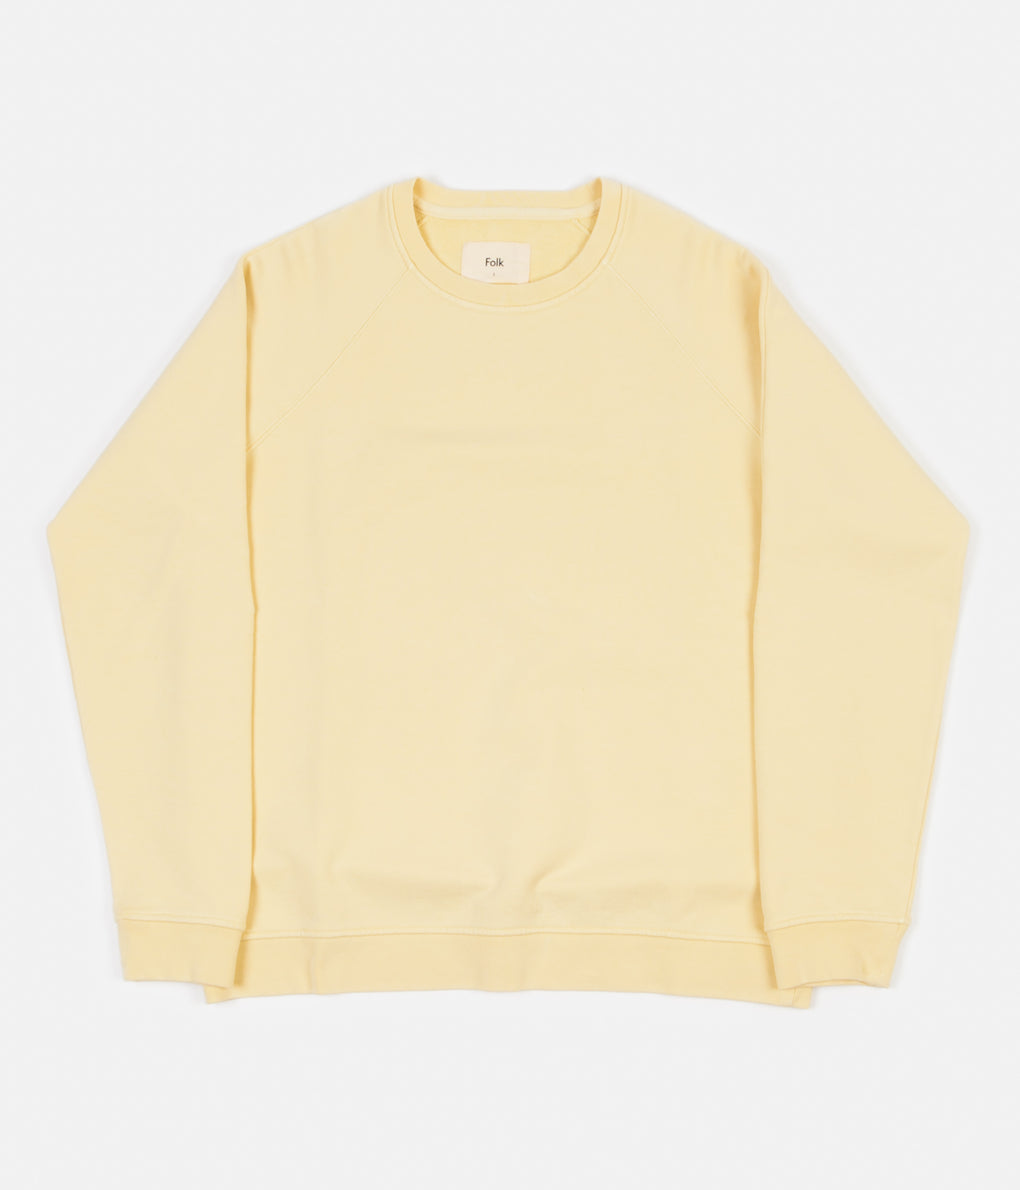 Folk Rivet Jersey Crewneck Sweatshirt - Soft Yellow